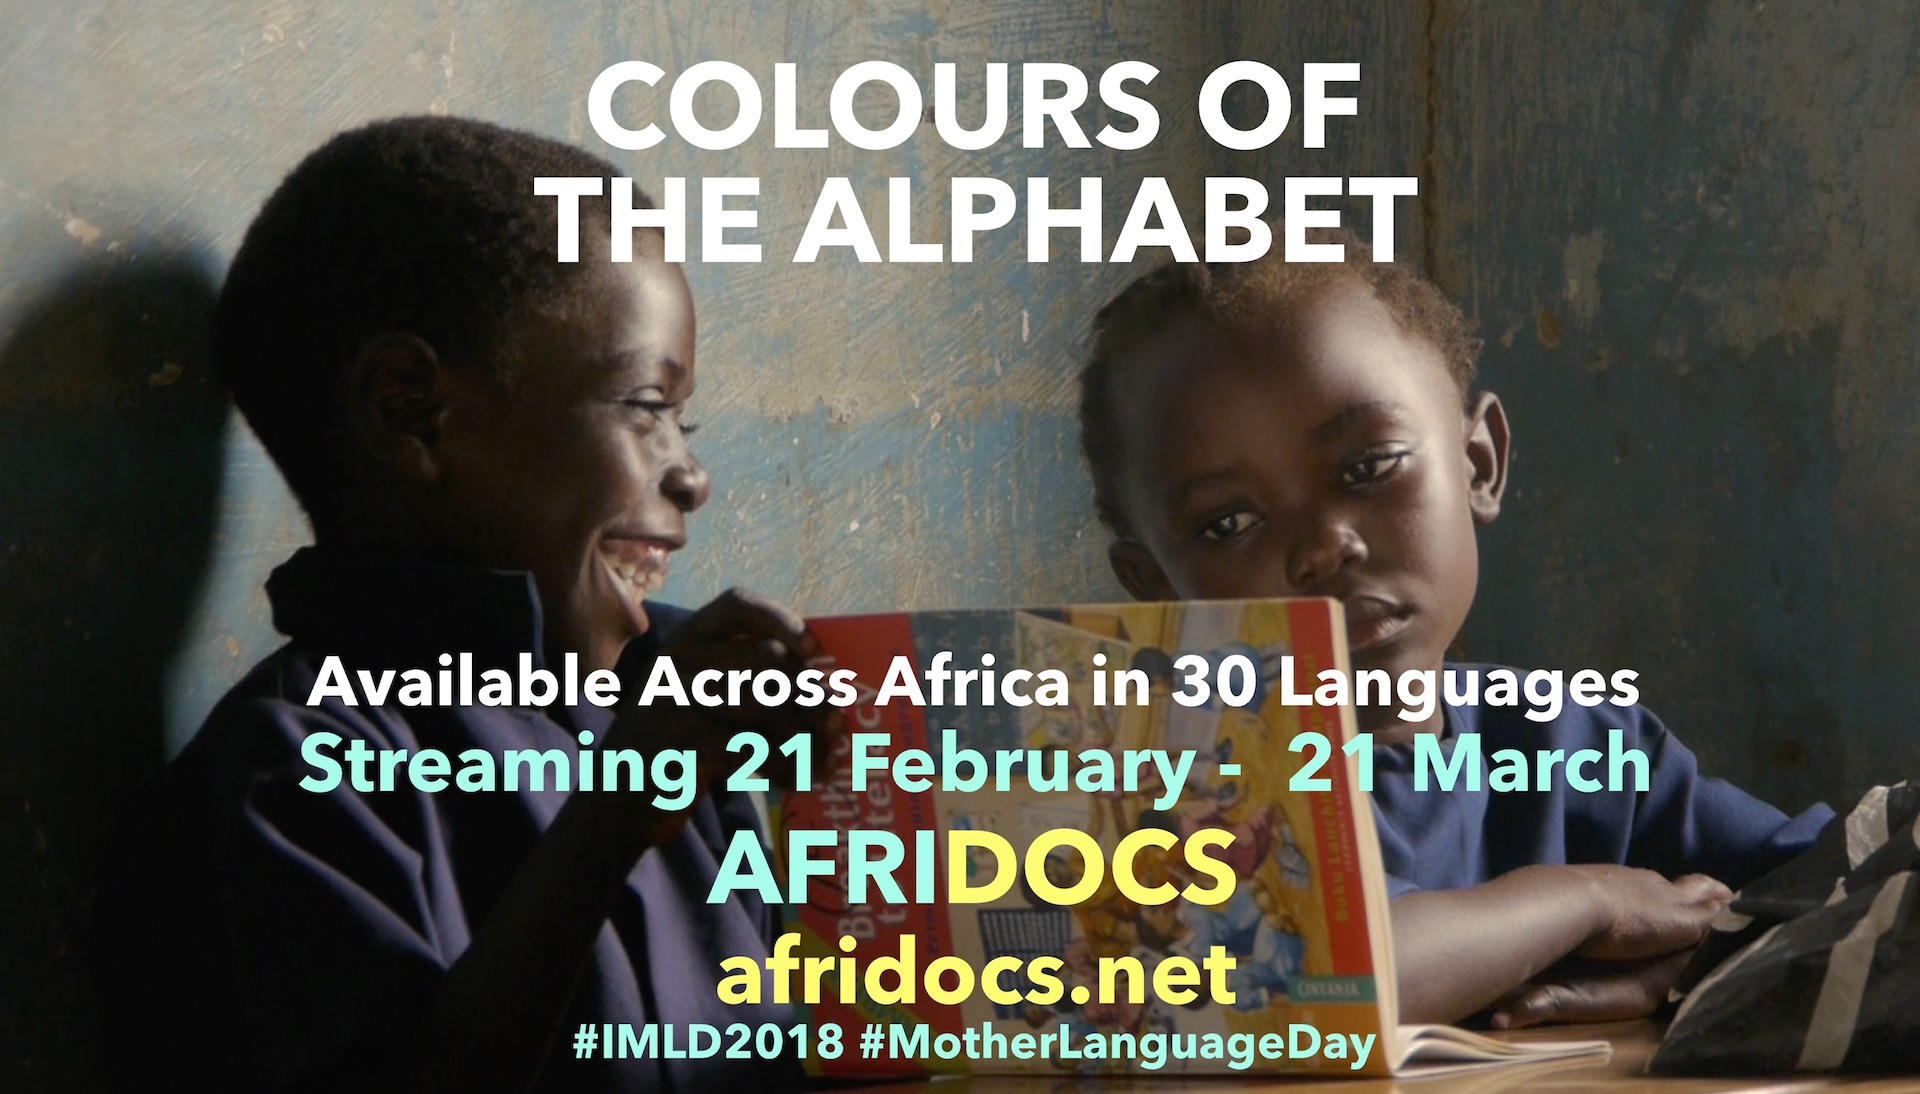 Colours of the Alphbaet Afridocs